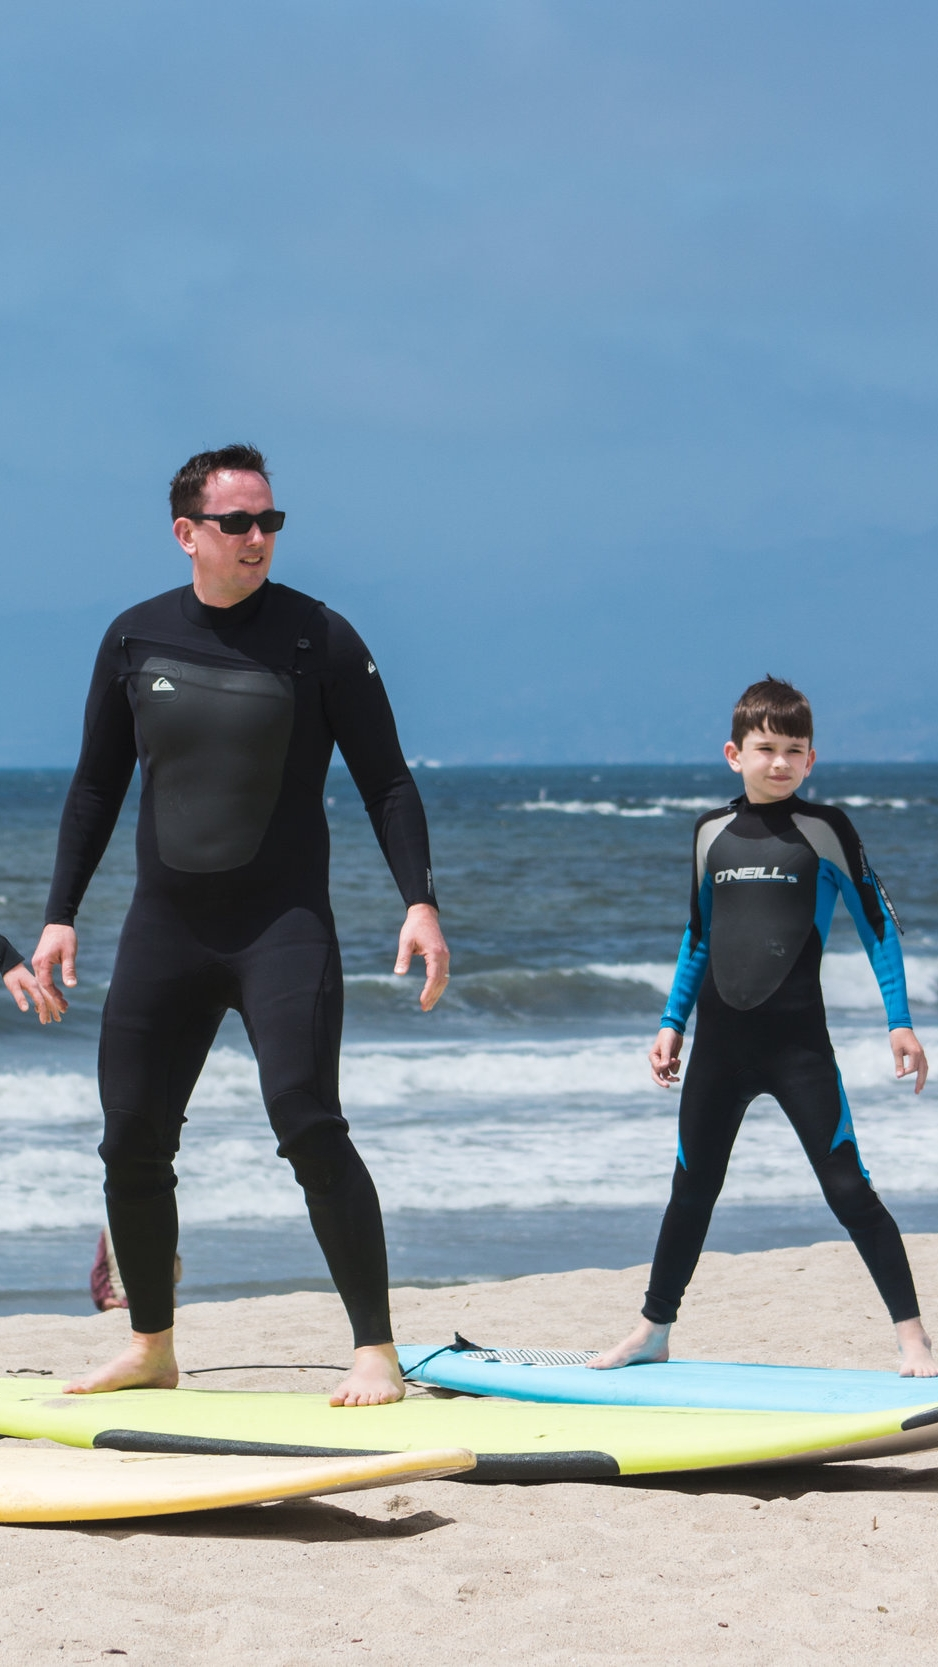 FAMILY DEALS - We tailor a great surfing experience for your family.